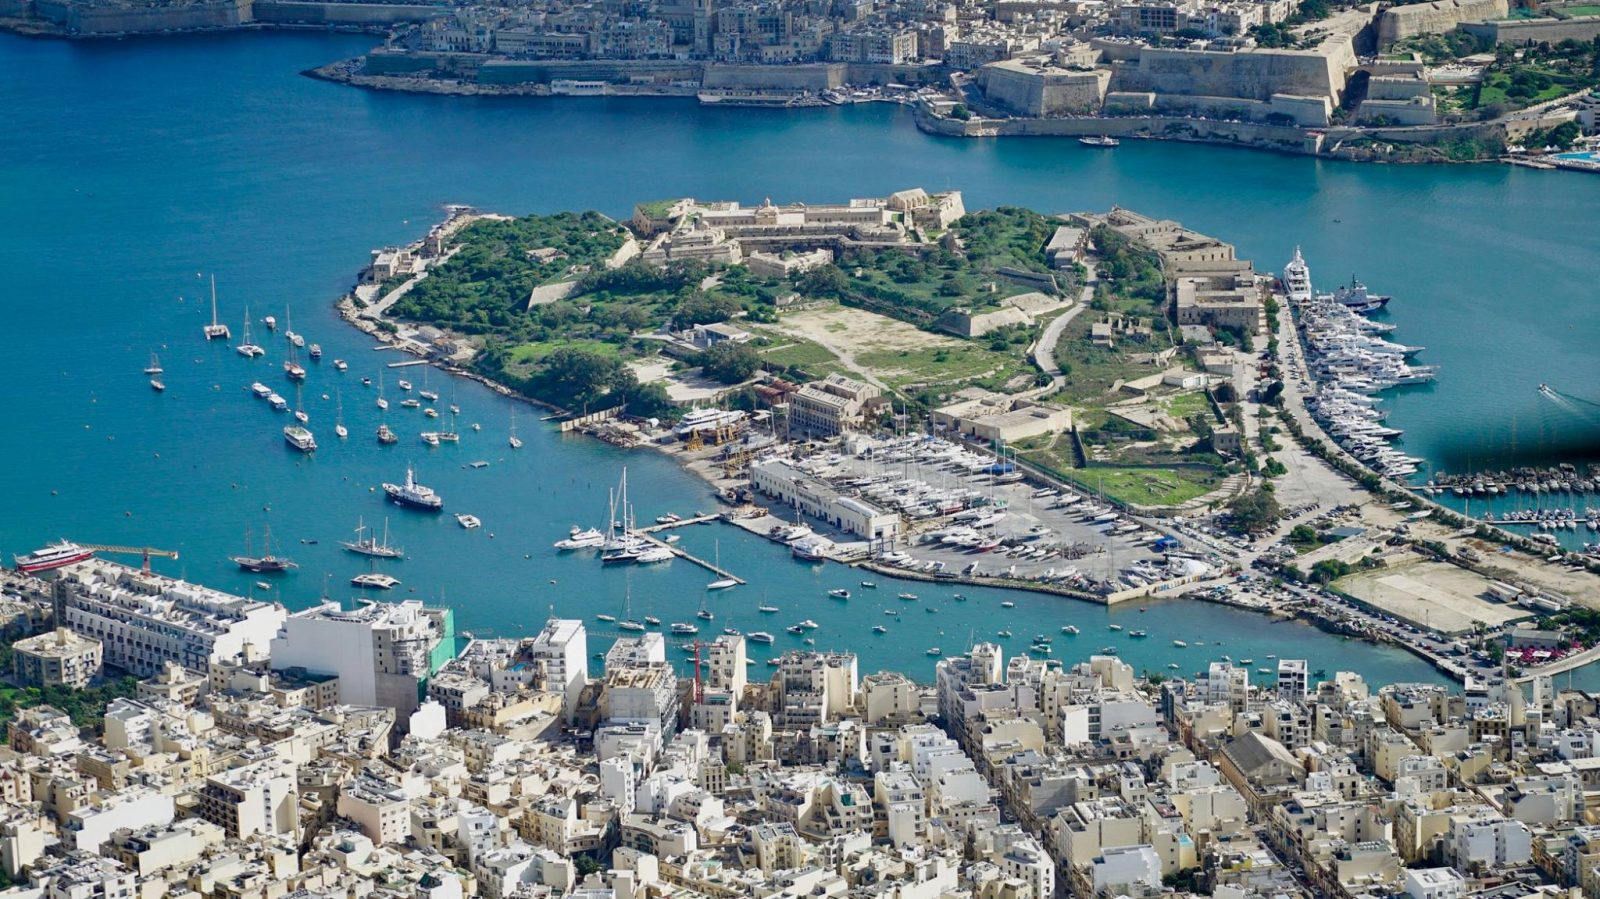 Manoel Island view from the air